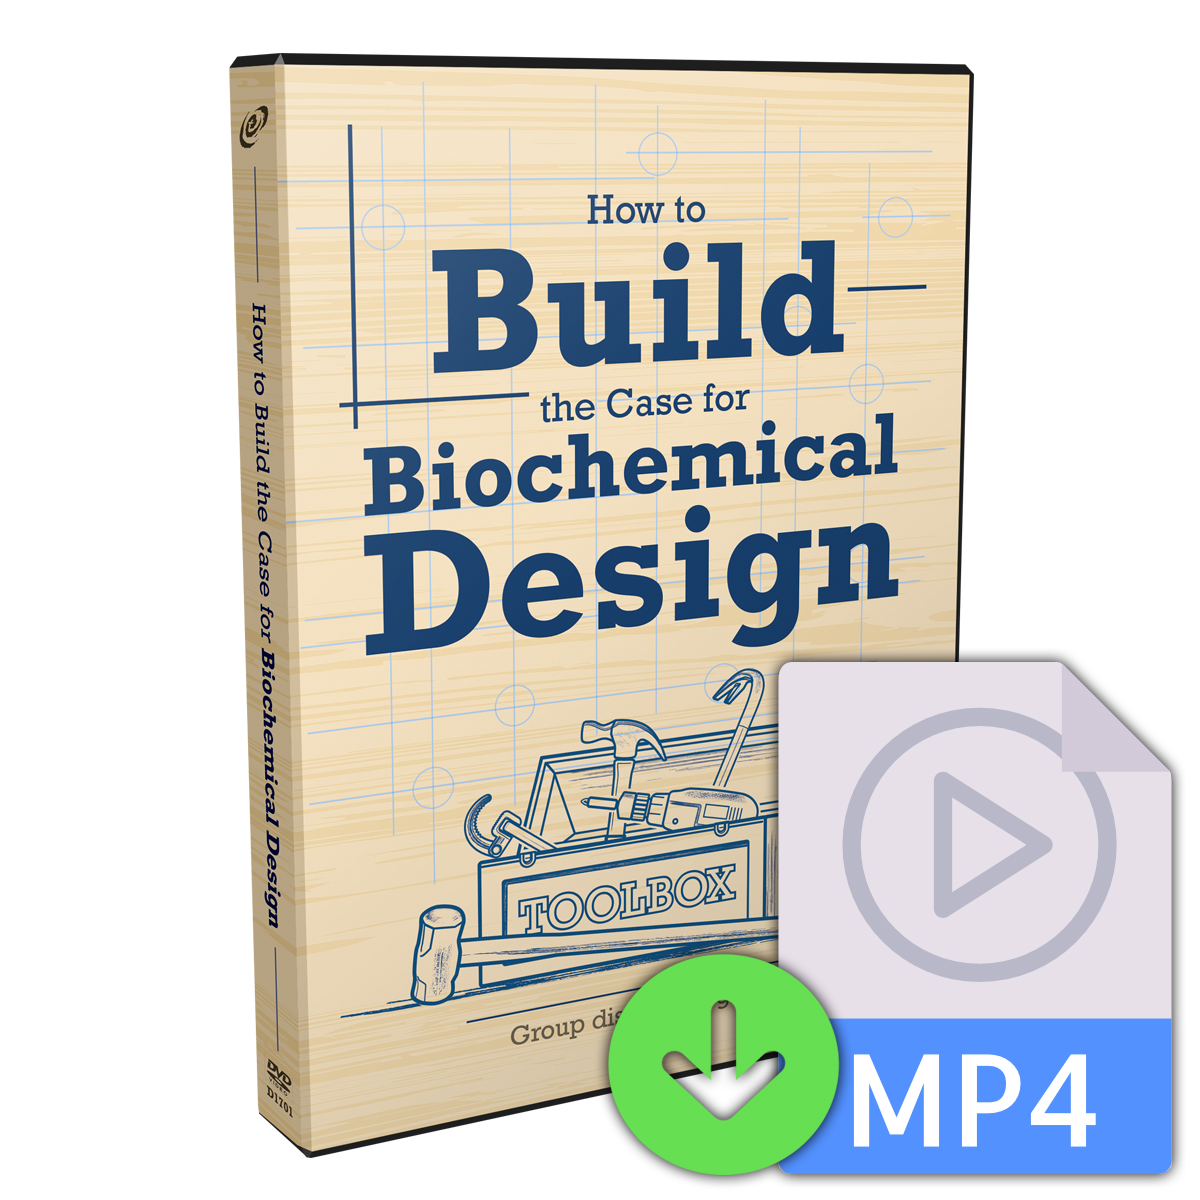 How to Build the Case for Biochemical Design – Abridged Version [Downloadable Video] Image